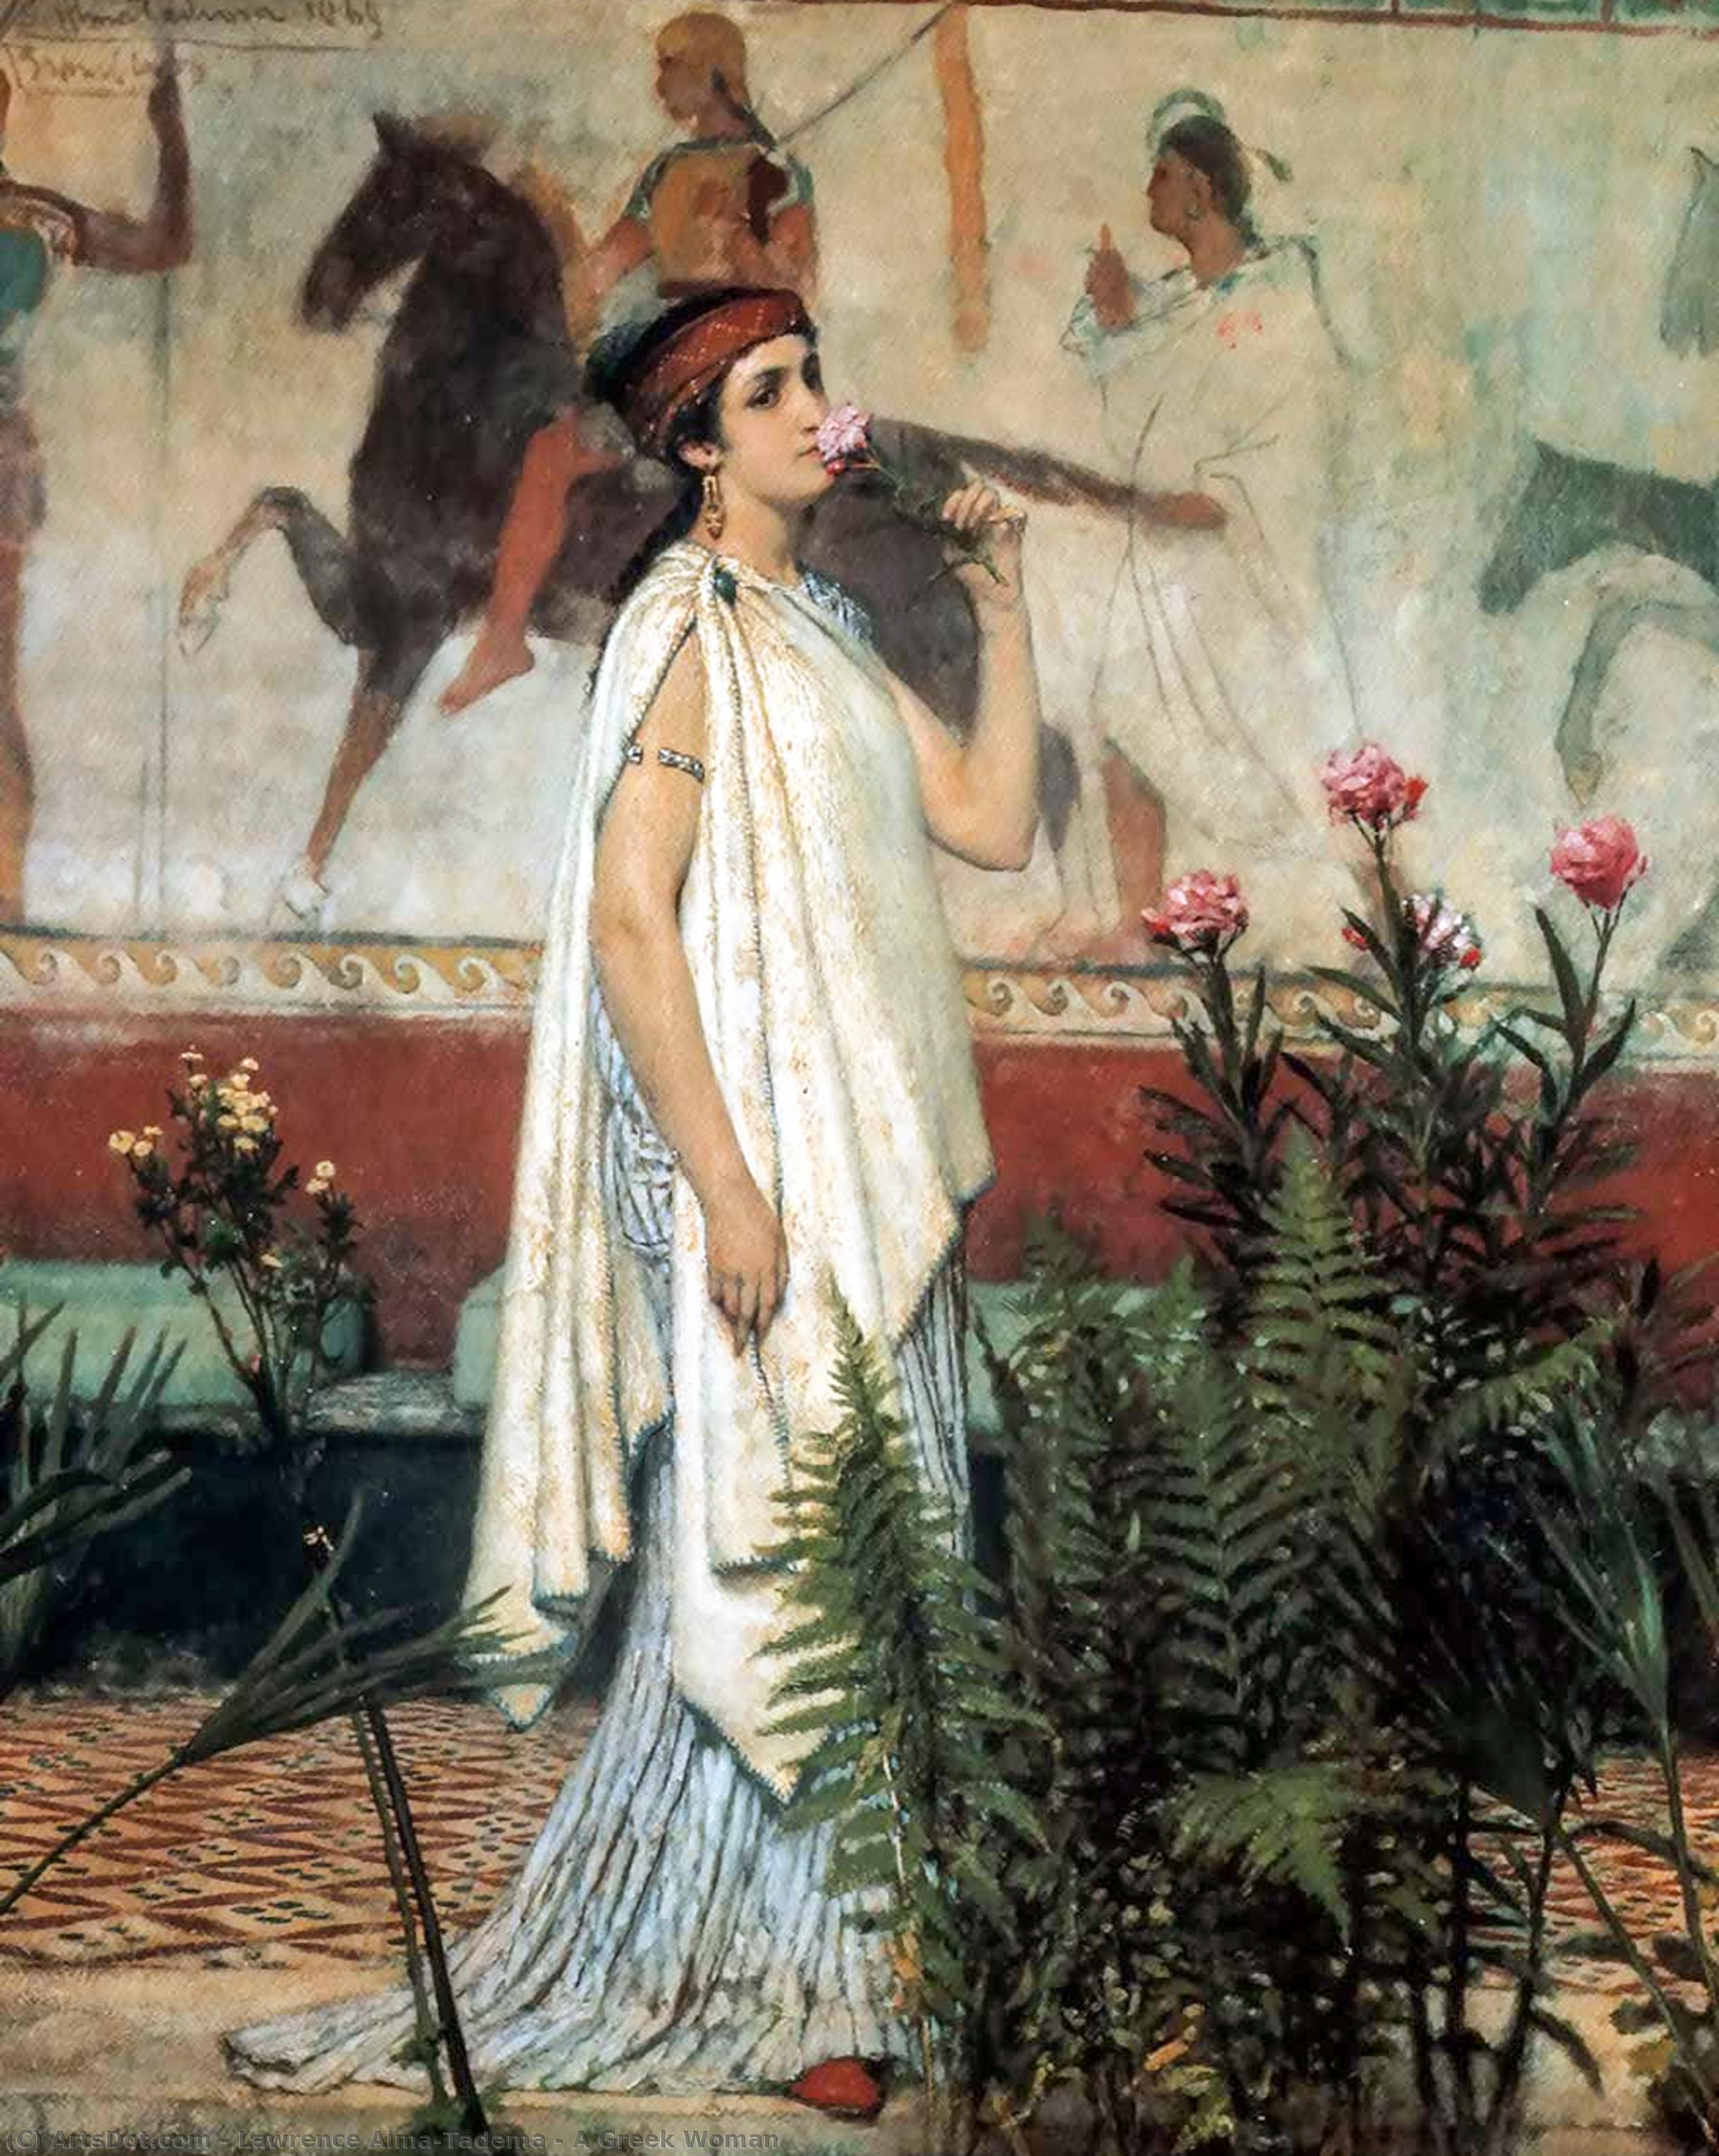 Wikioo.org - The Encyclopedia of Fine Arts - Painting, Artwork by Lawrence Alma-Tadema - A Greek Woman